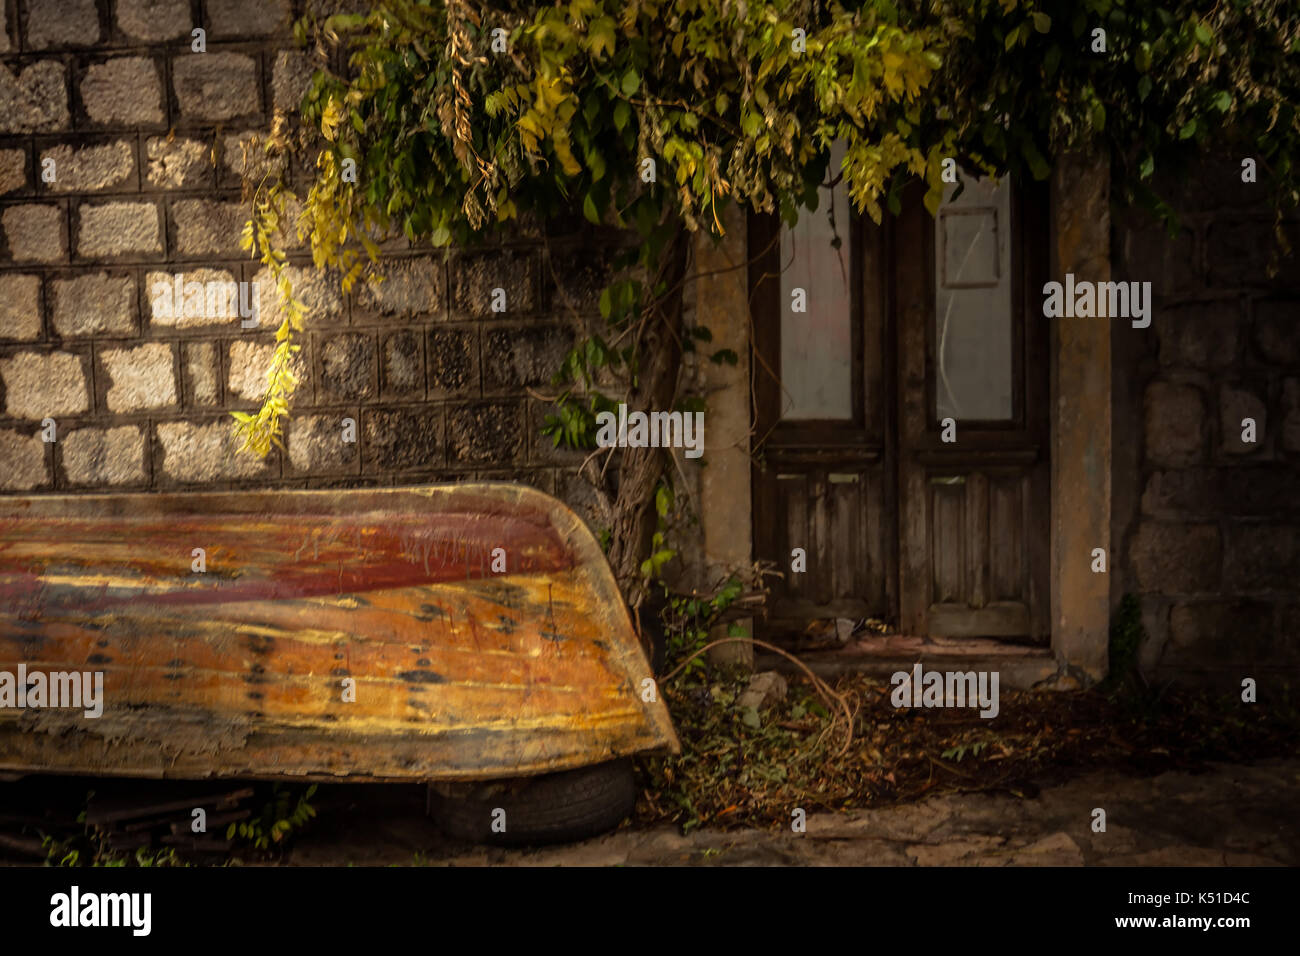 Vintage medieval building exterior on backyard with overturned old vintage sail boat in overcast day during raining autumn season in old European city - Stock Image